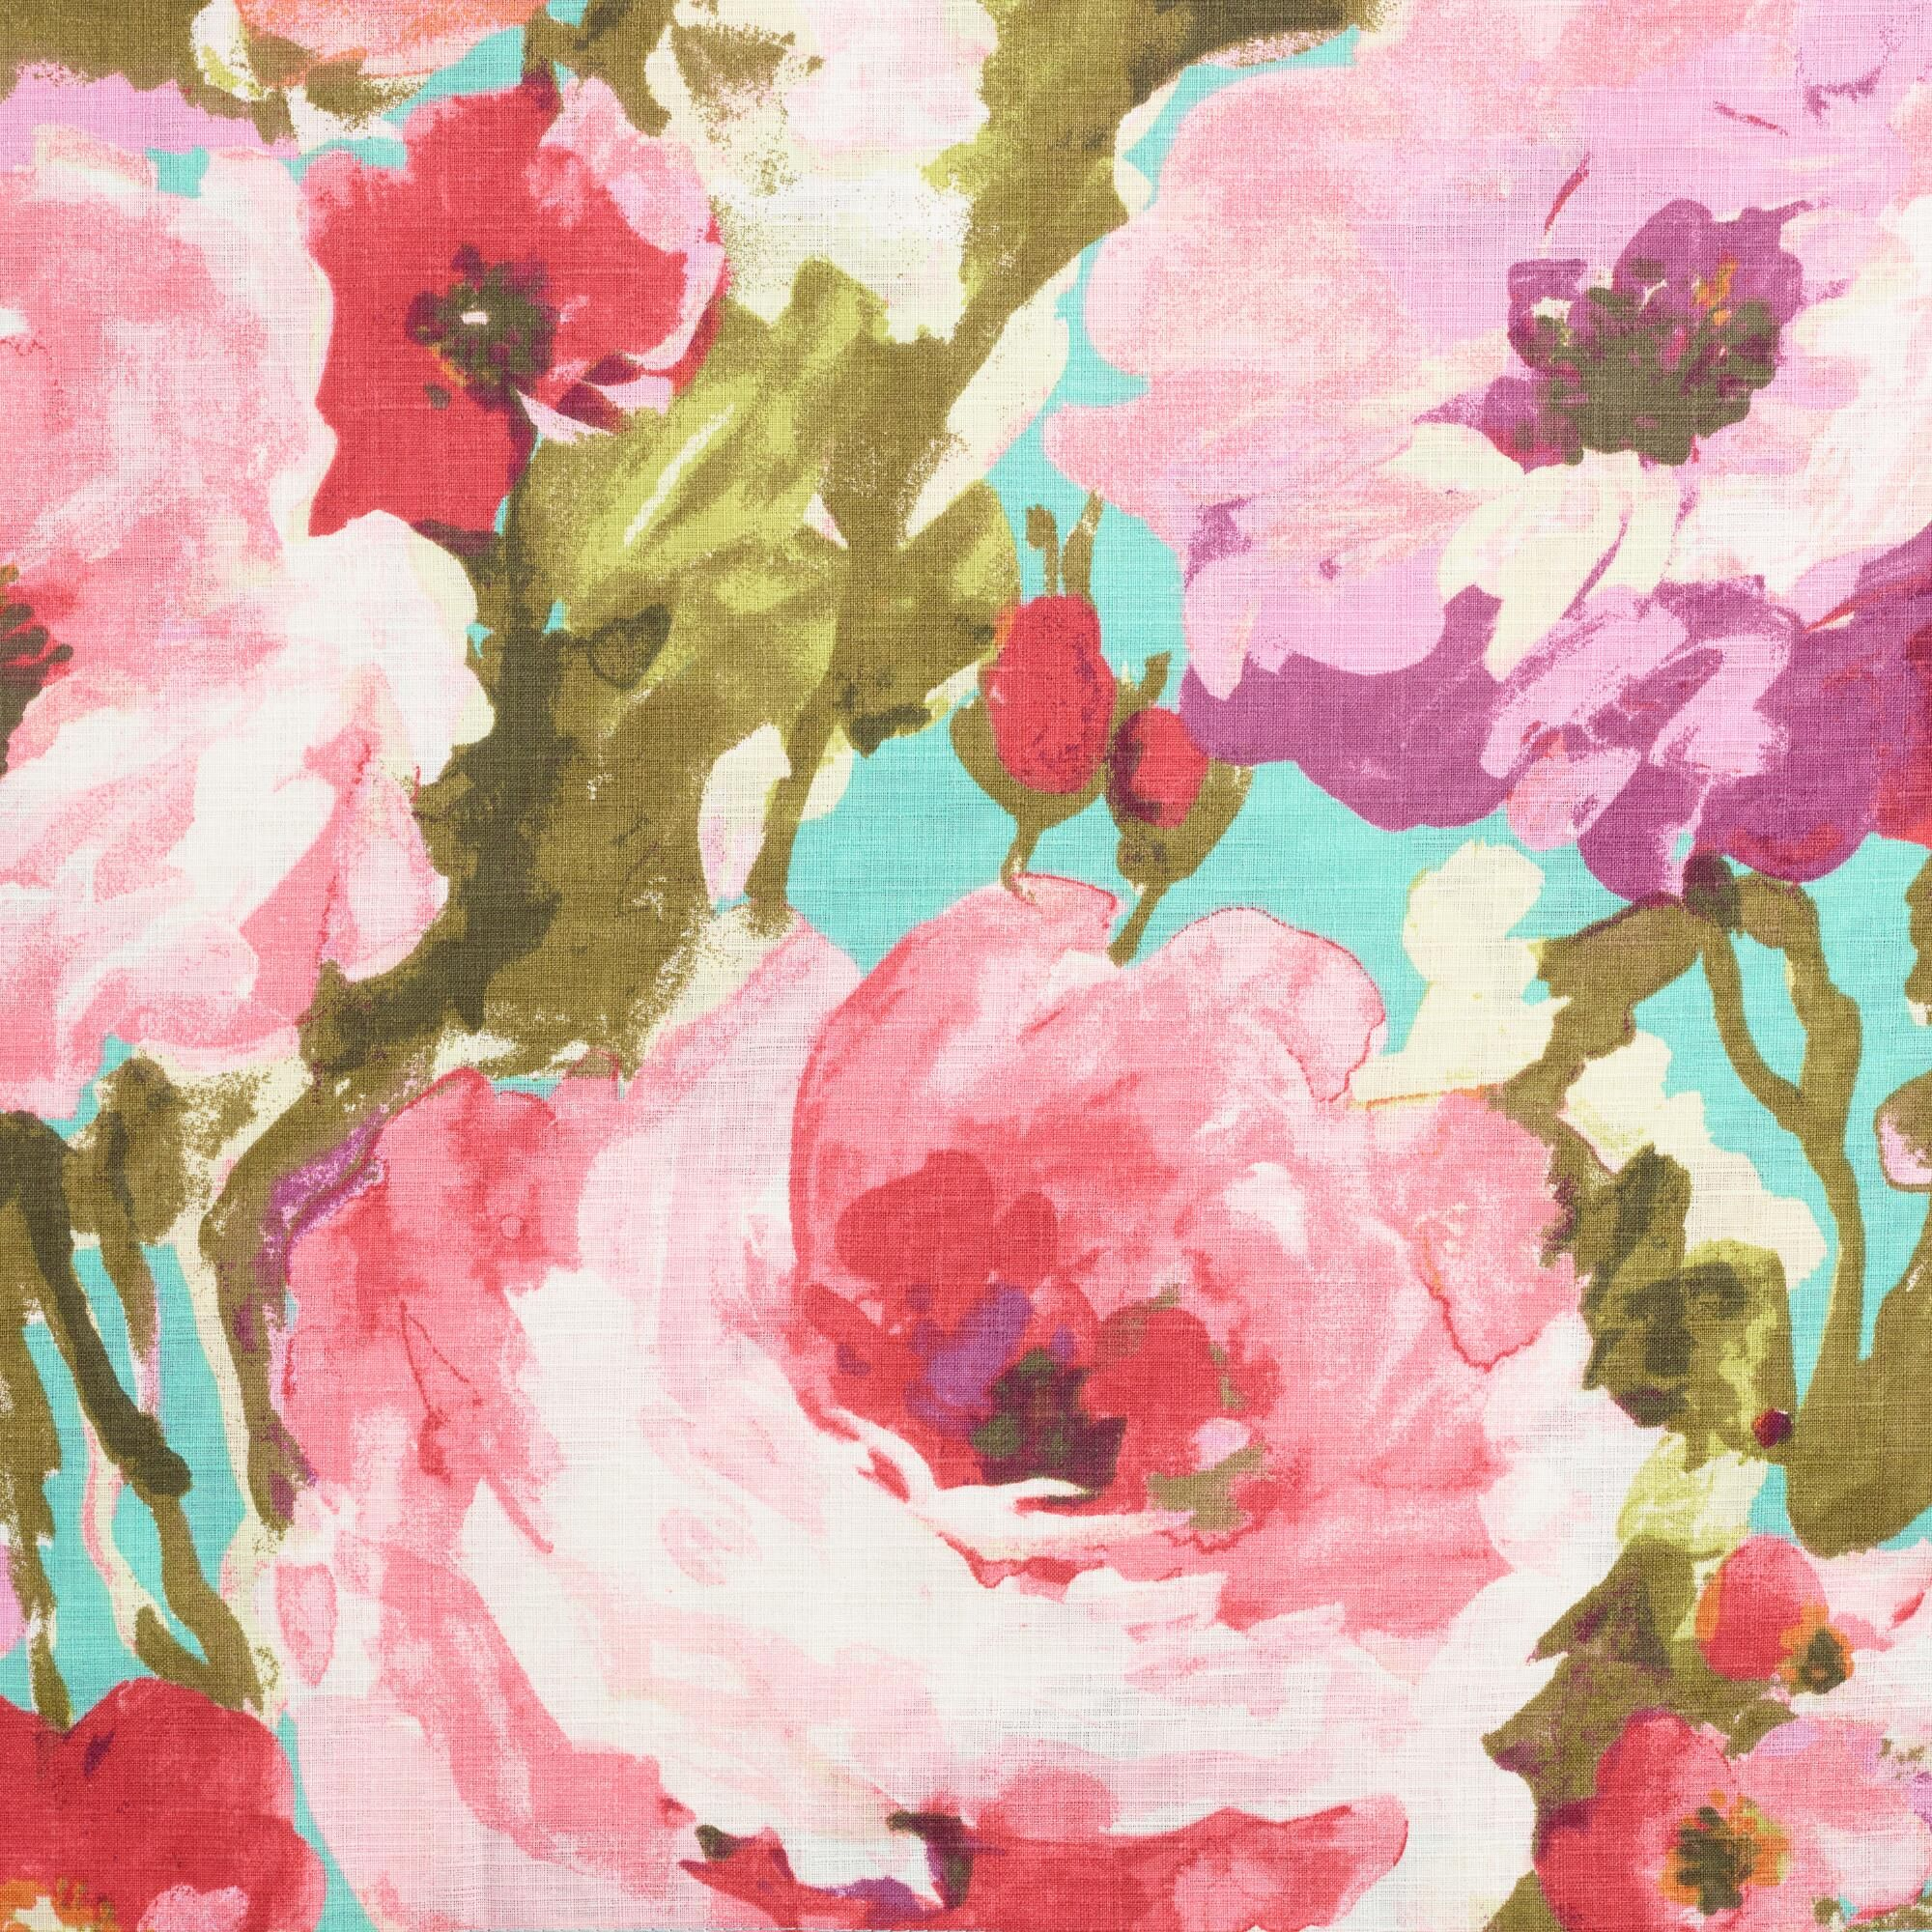 A Vibrant Floral Design With Whimsical Watercolor Like